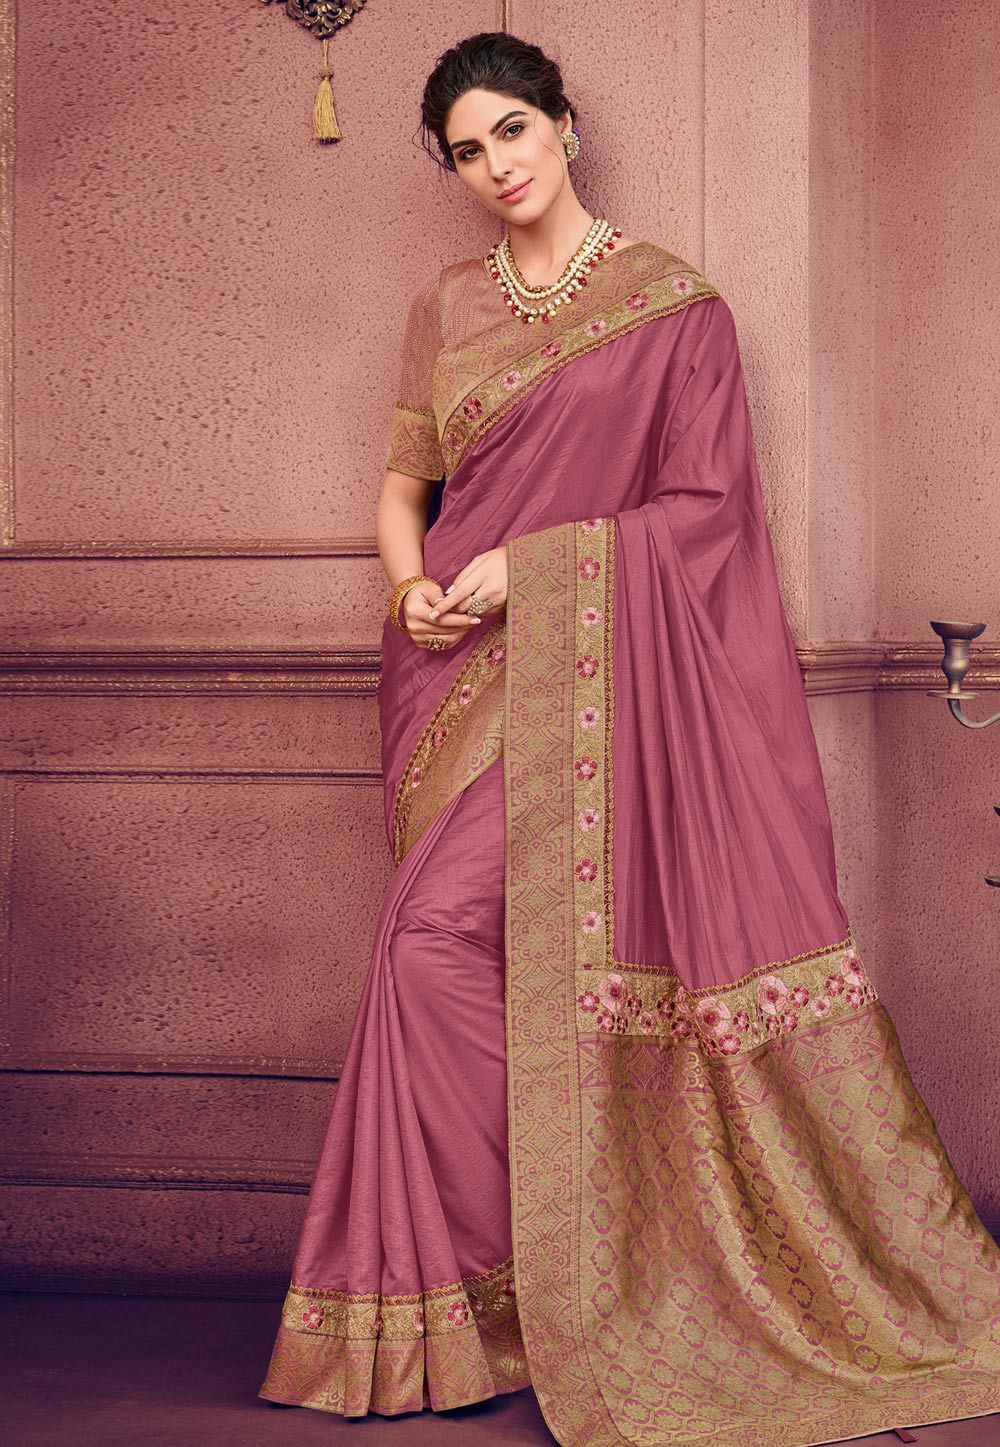 7aed5009ef Buy Pink Silk Festival Wear Saree 160934 with blouse online at lowest price  from vast collection of sarees at Indianclothstore.com.